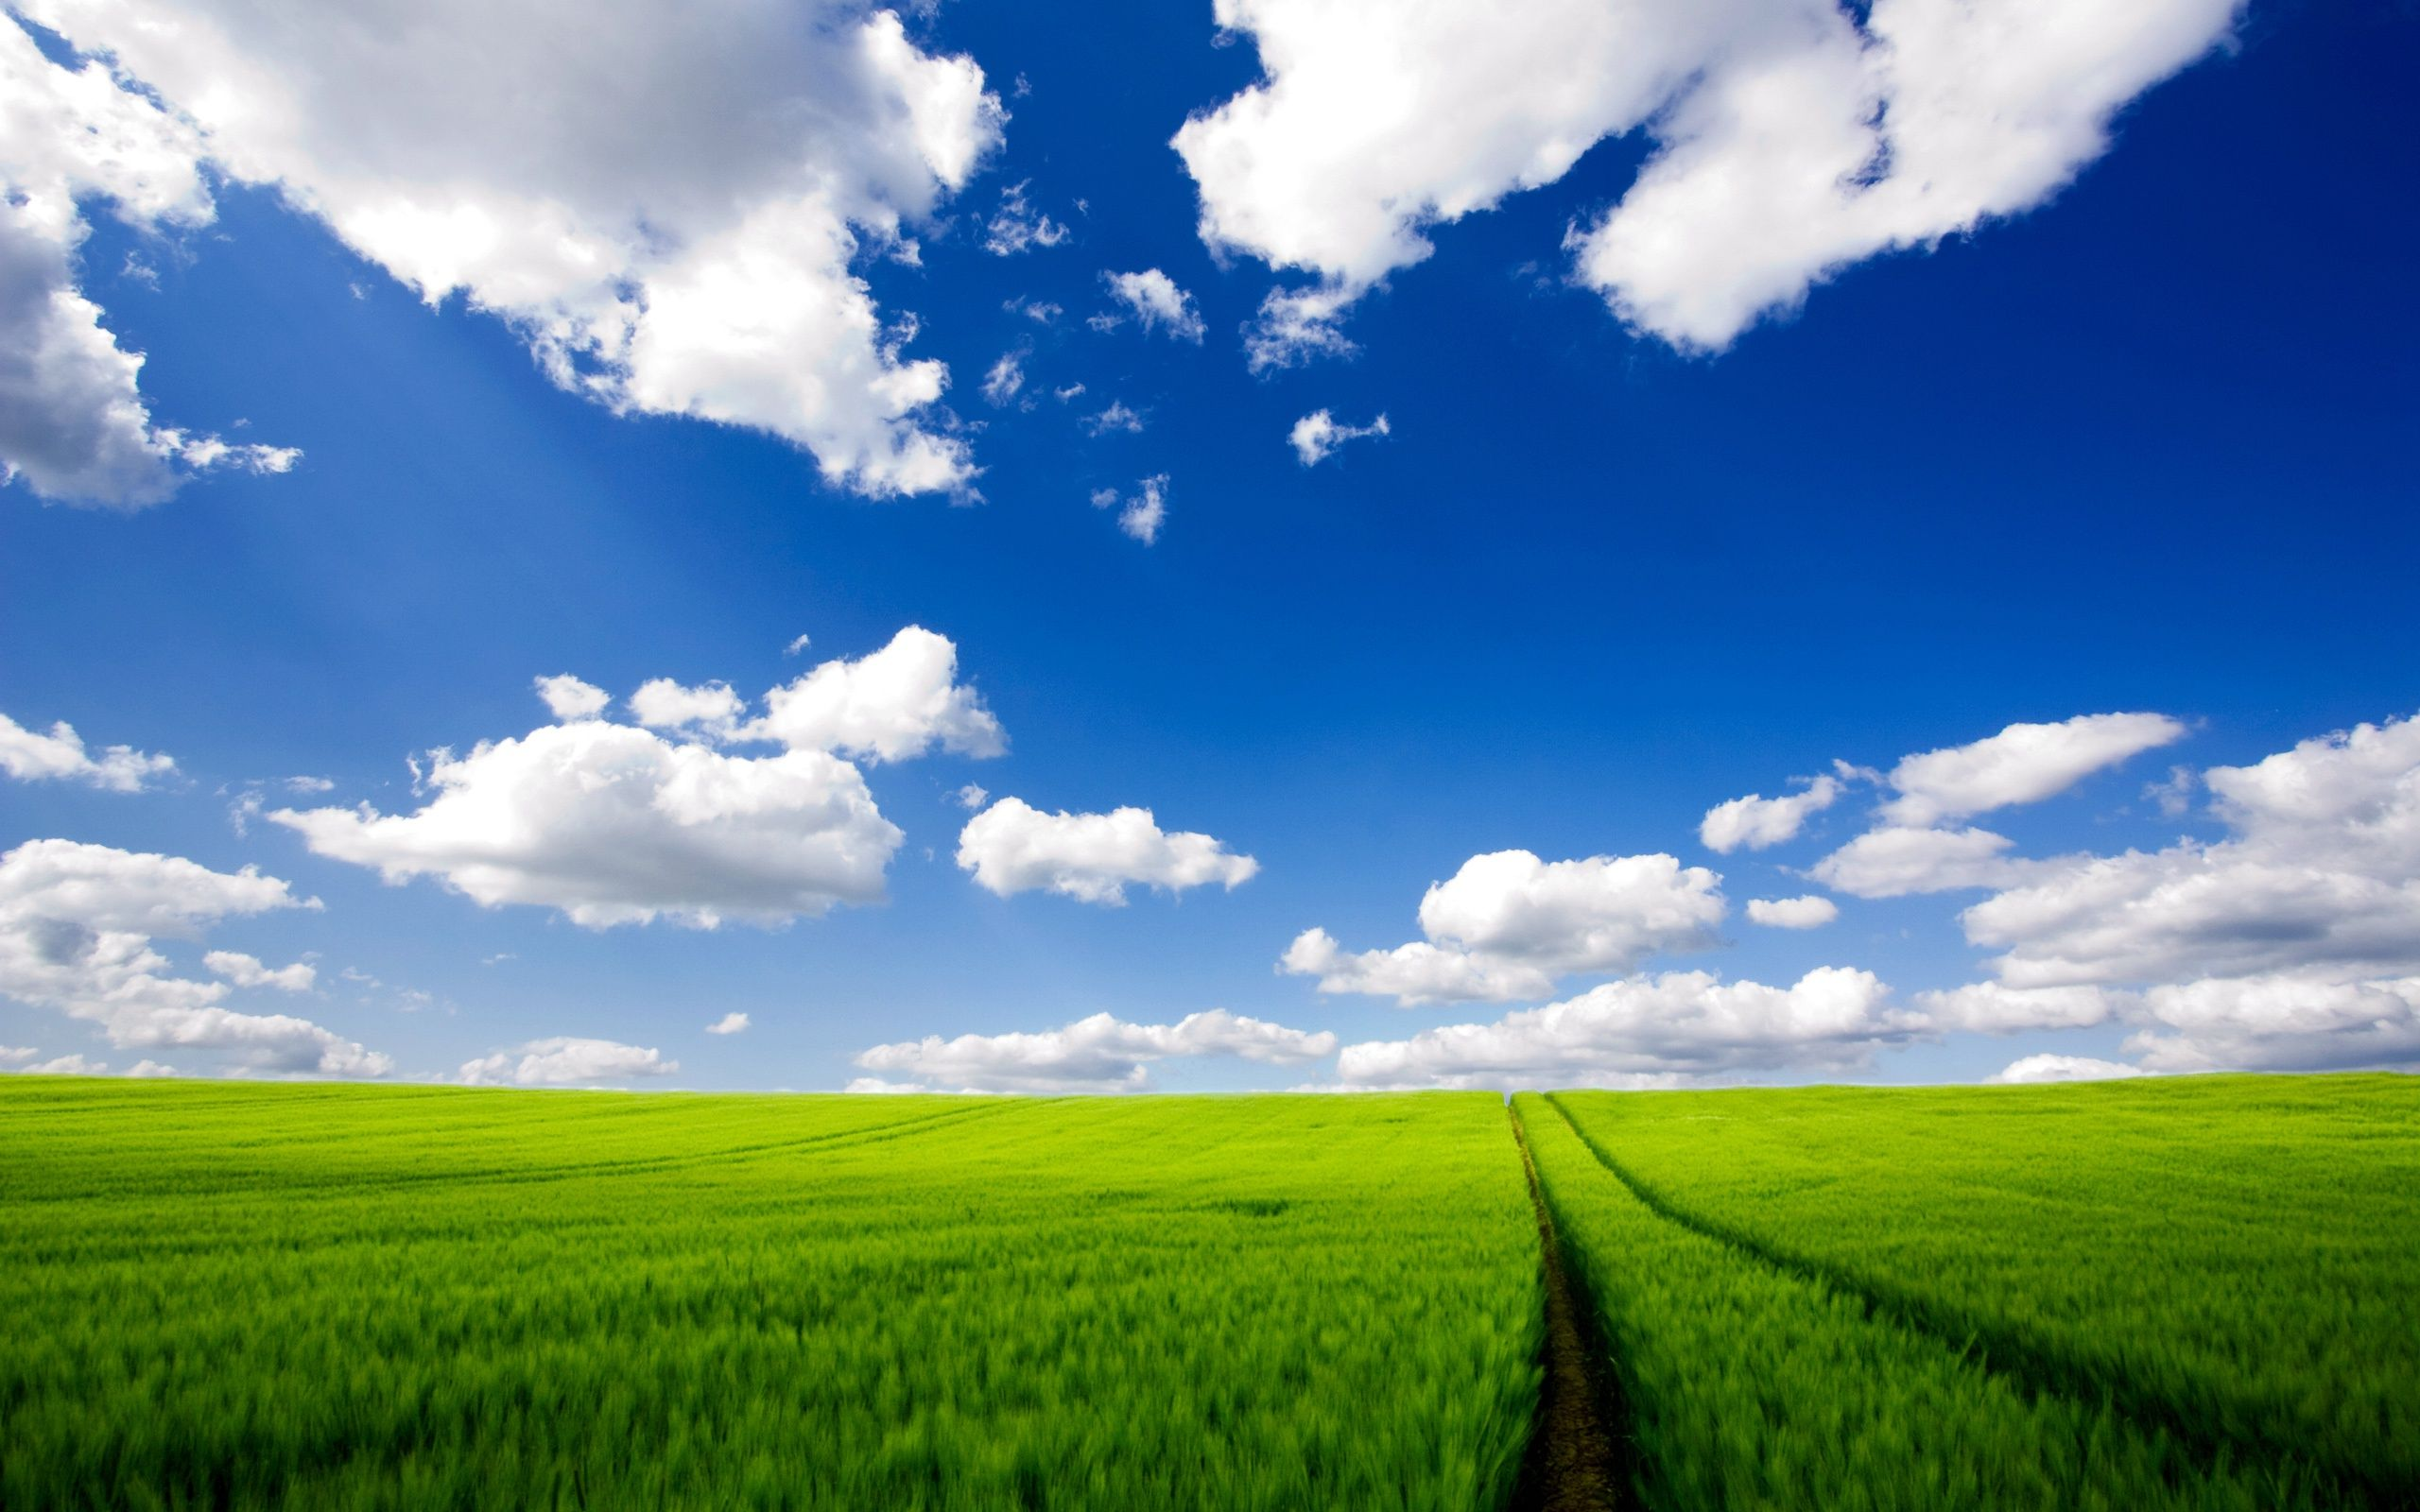 Green Landscape with Cloudy Blue Sky (click to view)